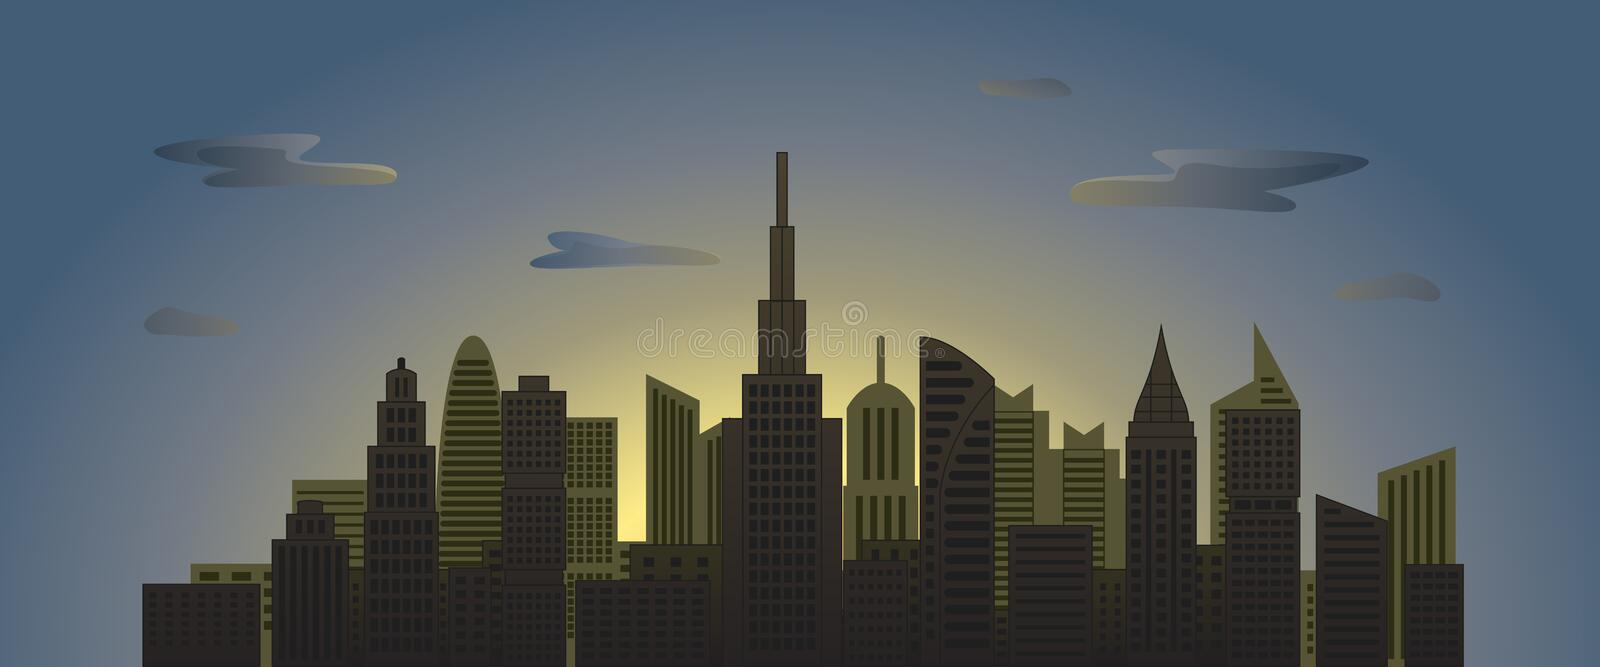 City skyscrapers at dawn with clouds in sky stock photography